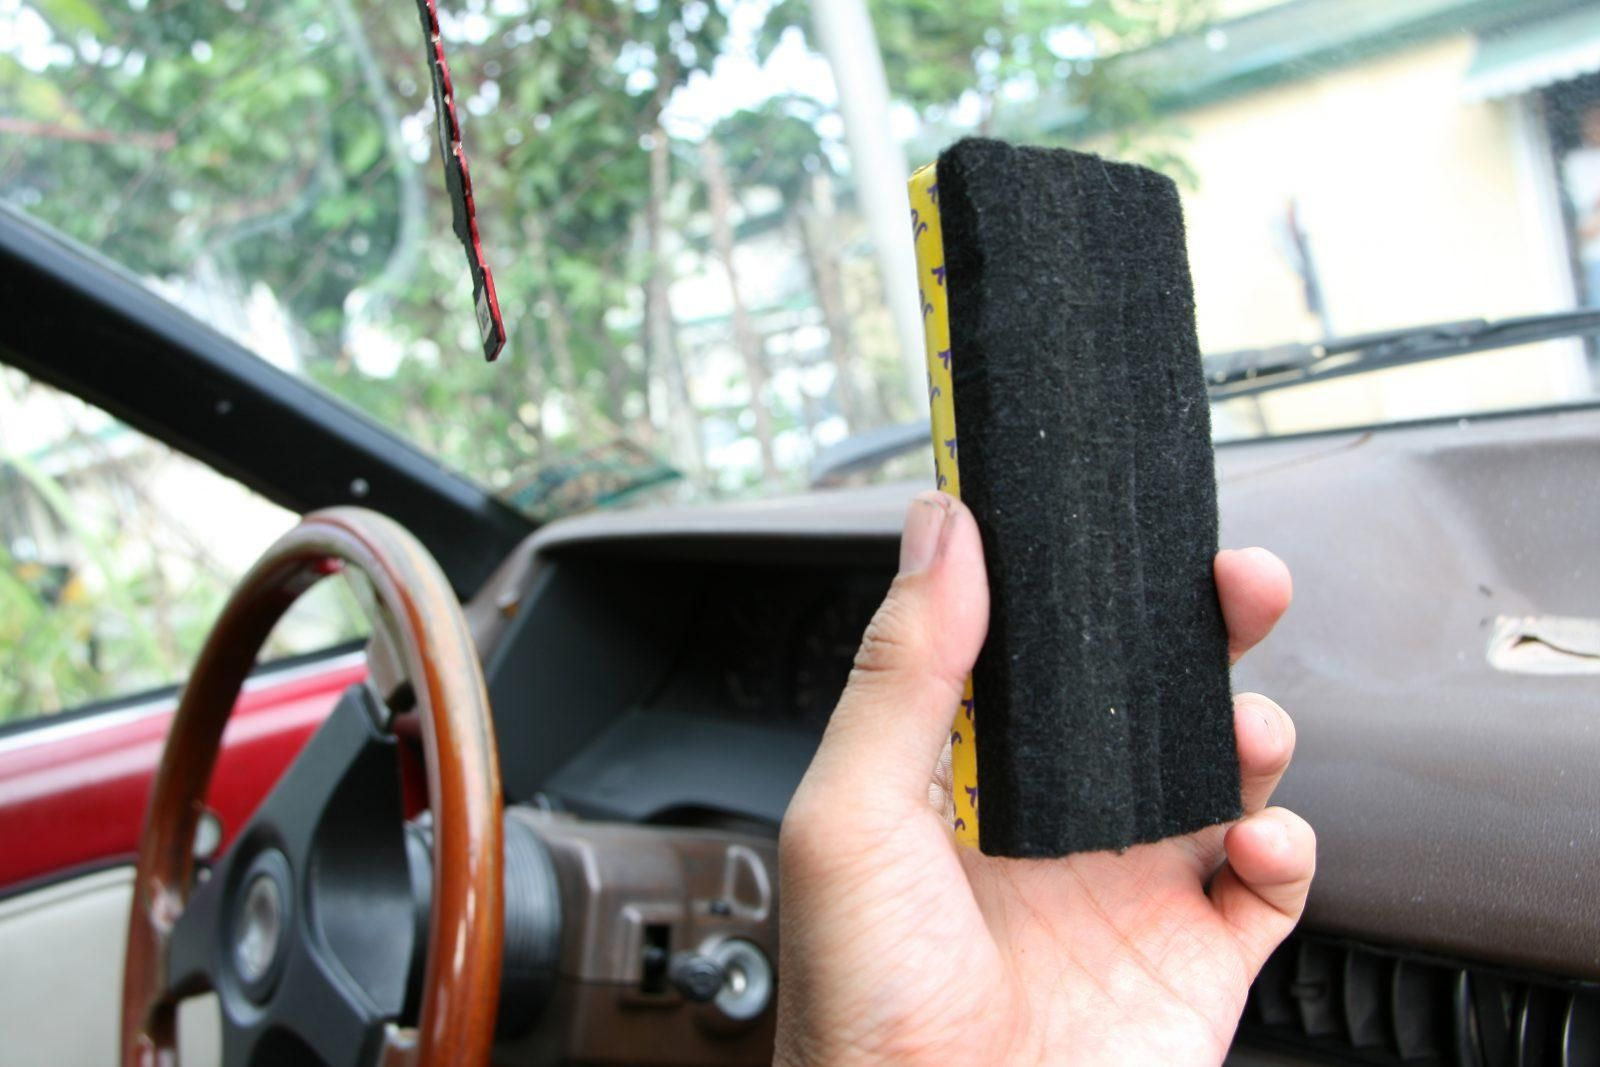 How to clean inside of windshield lets follow this